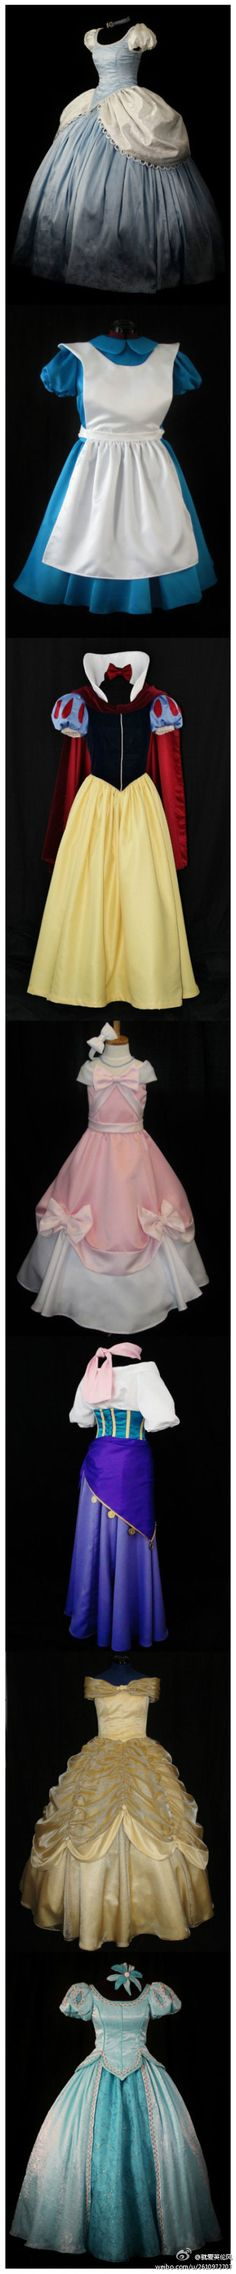 Now this is what I'm talking about. I would live to wear these princess gowns for Halloween